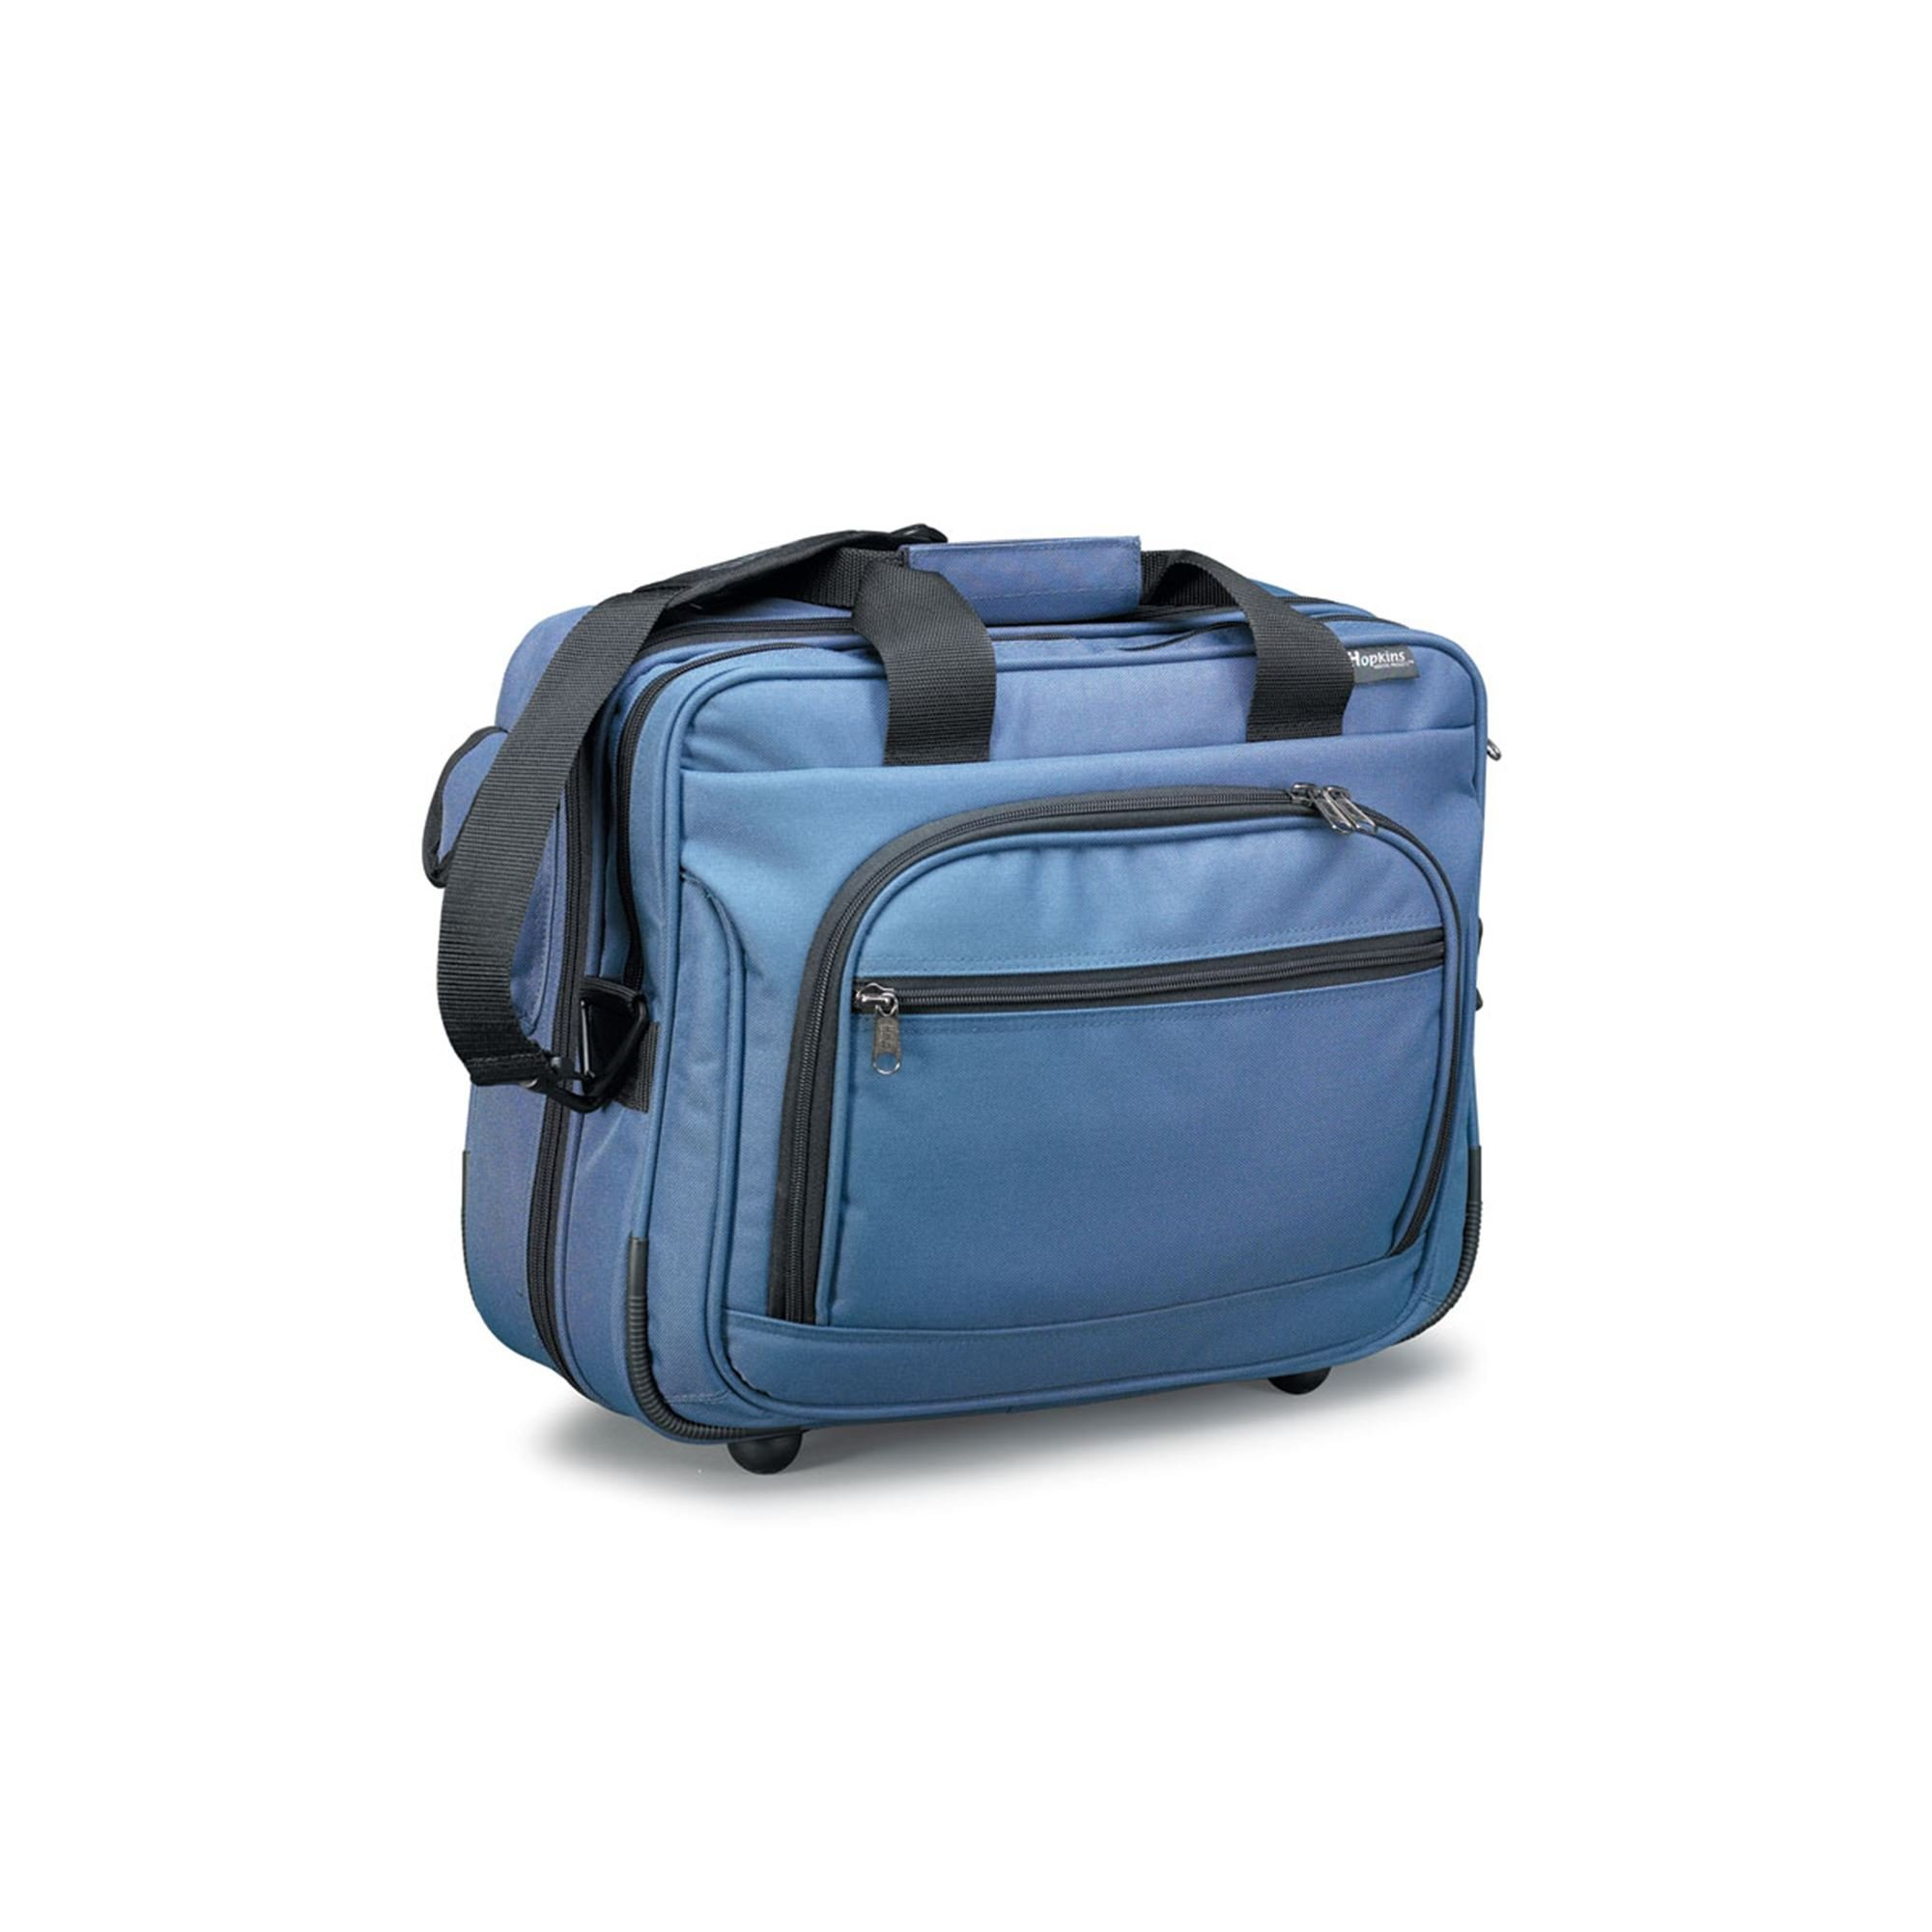 Wheeled Home Healthcare Bag for Medical Professionals